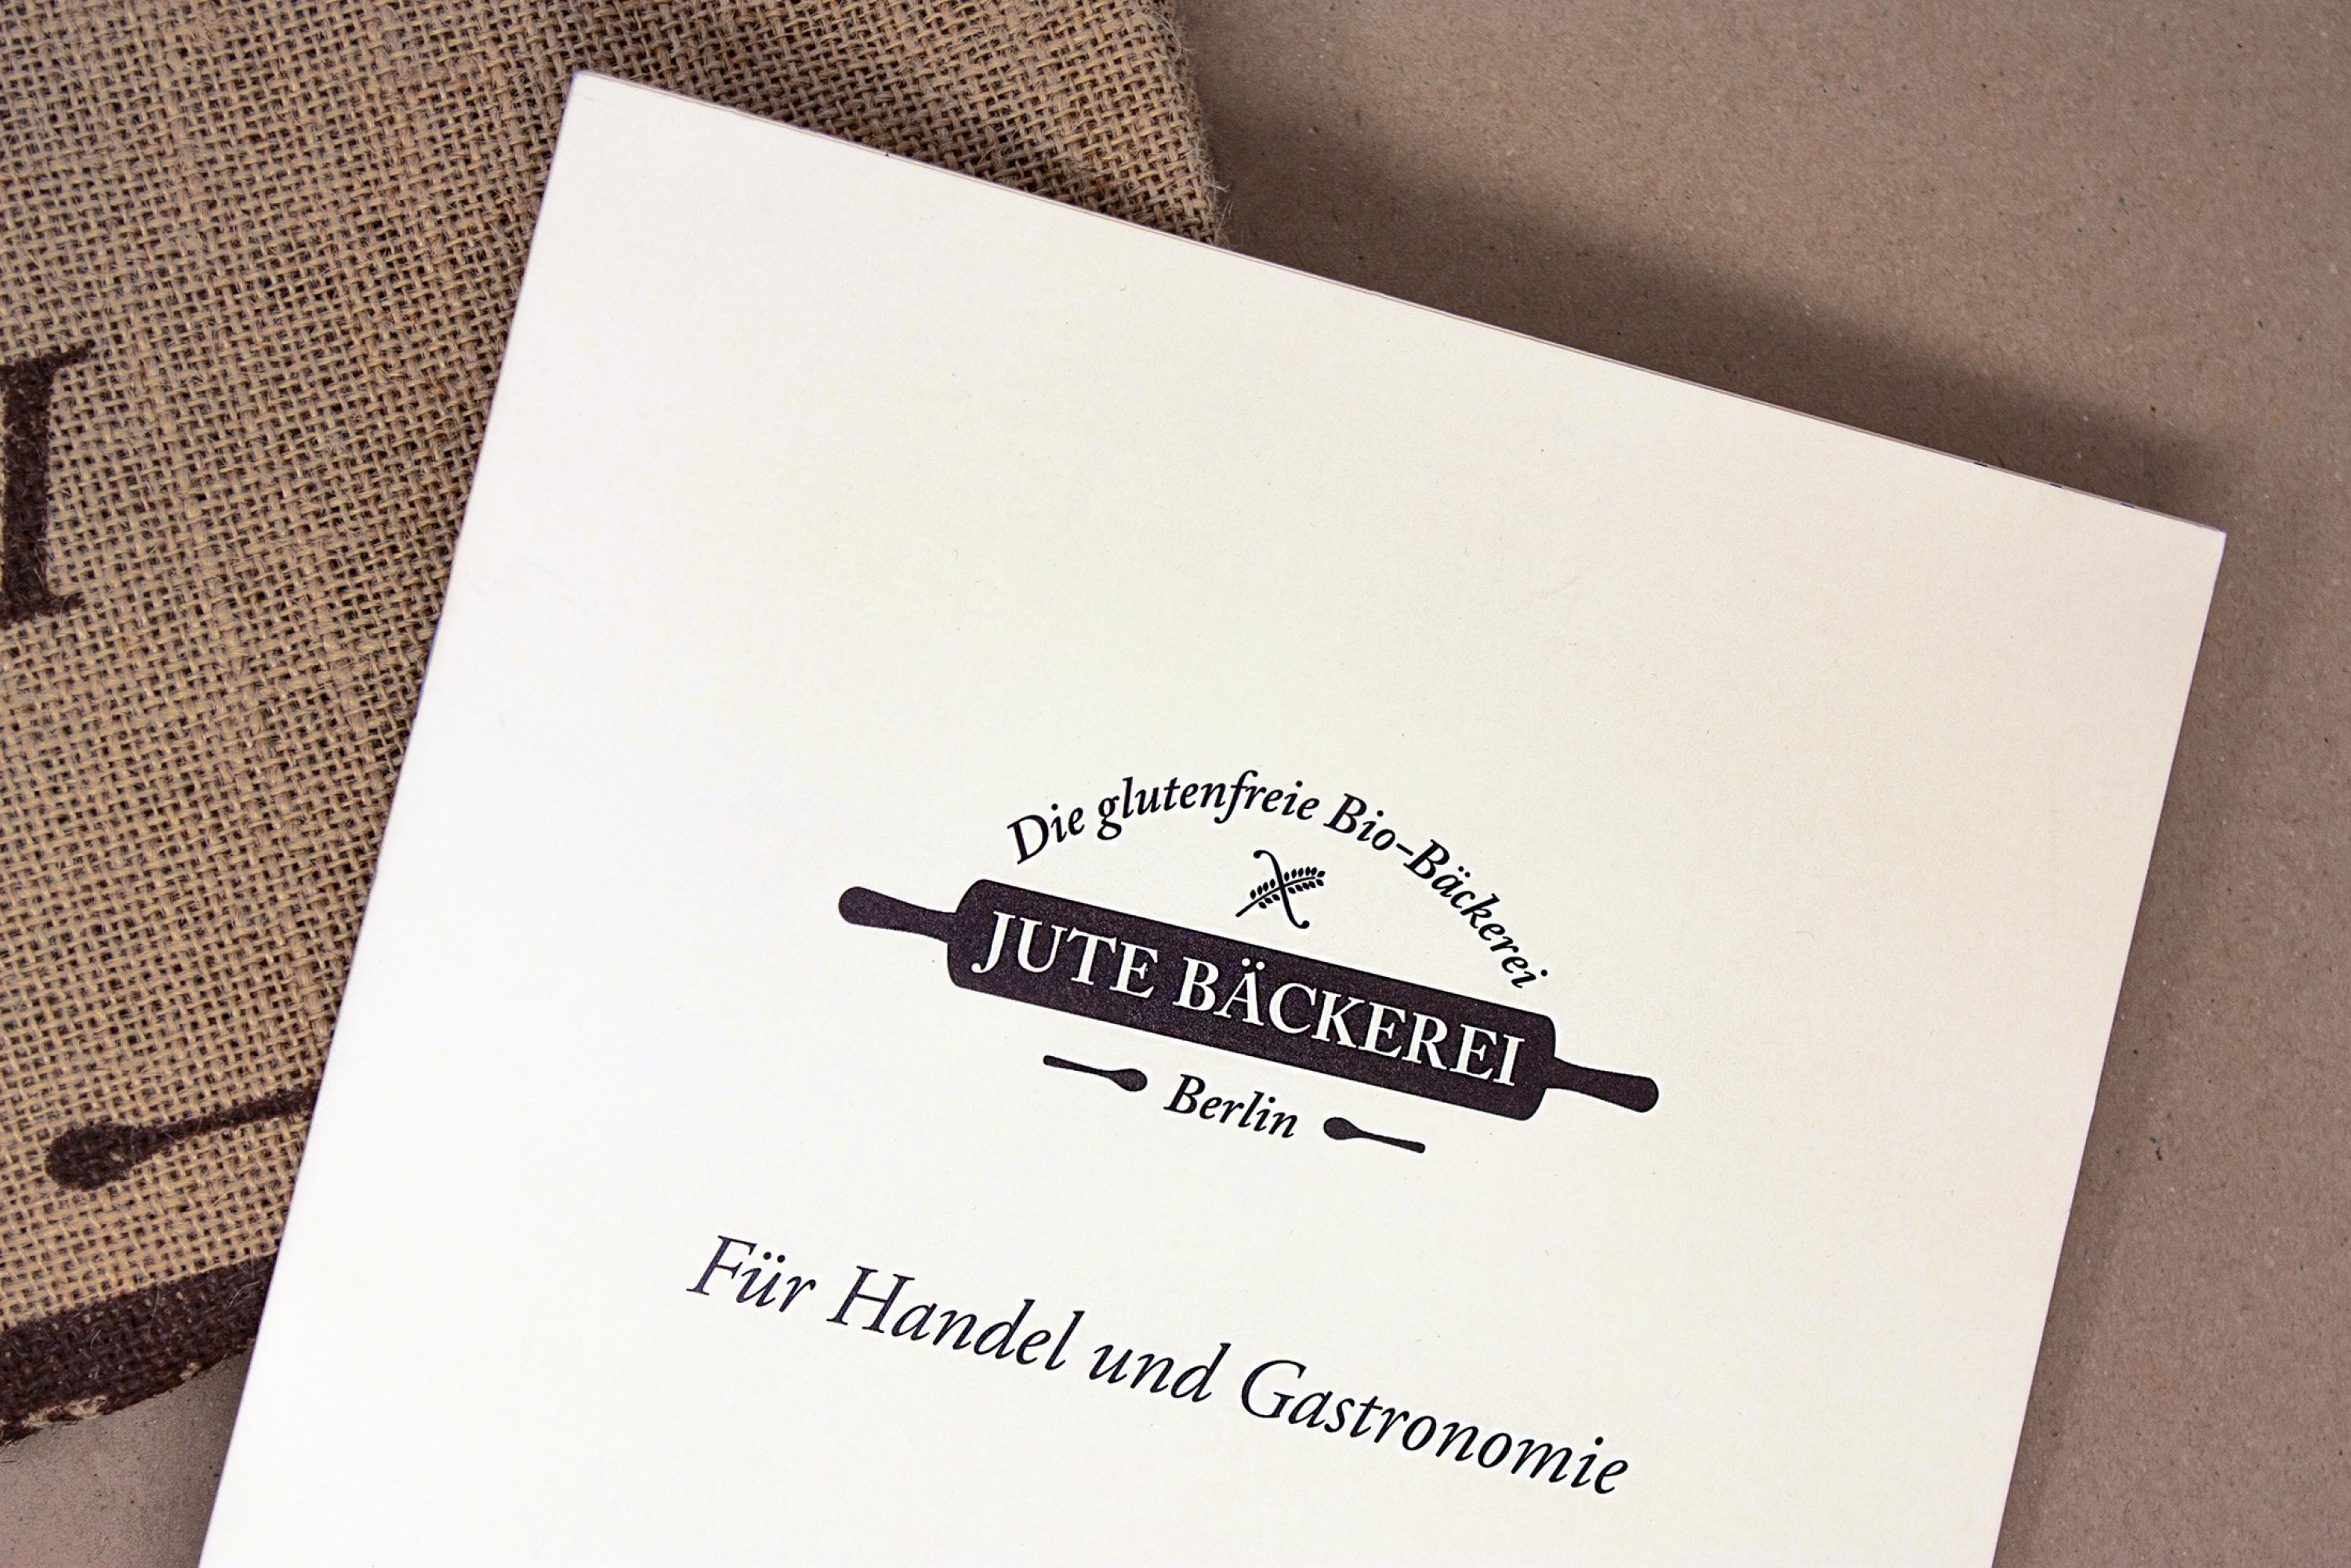 Print-broschuere-jute-baeckerei-formlos-corporate-design